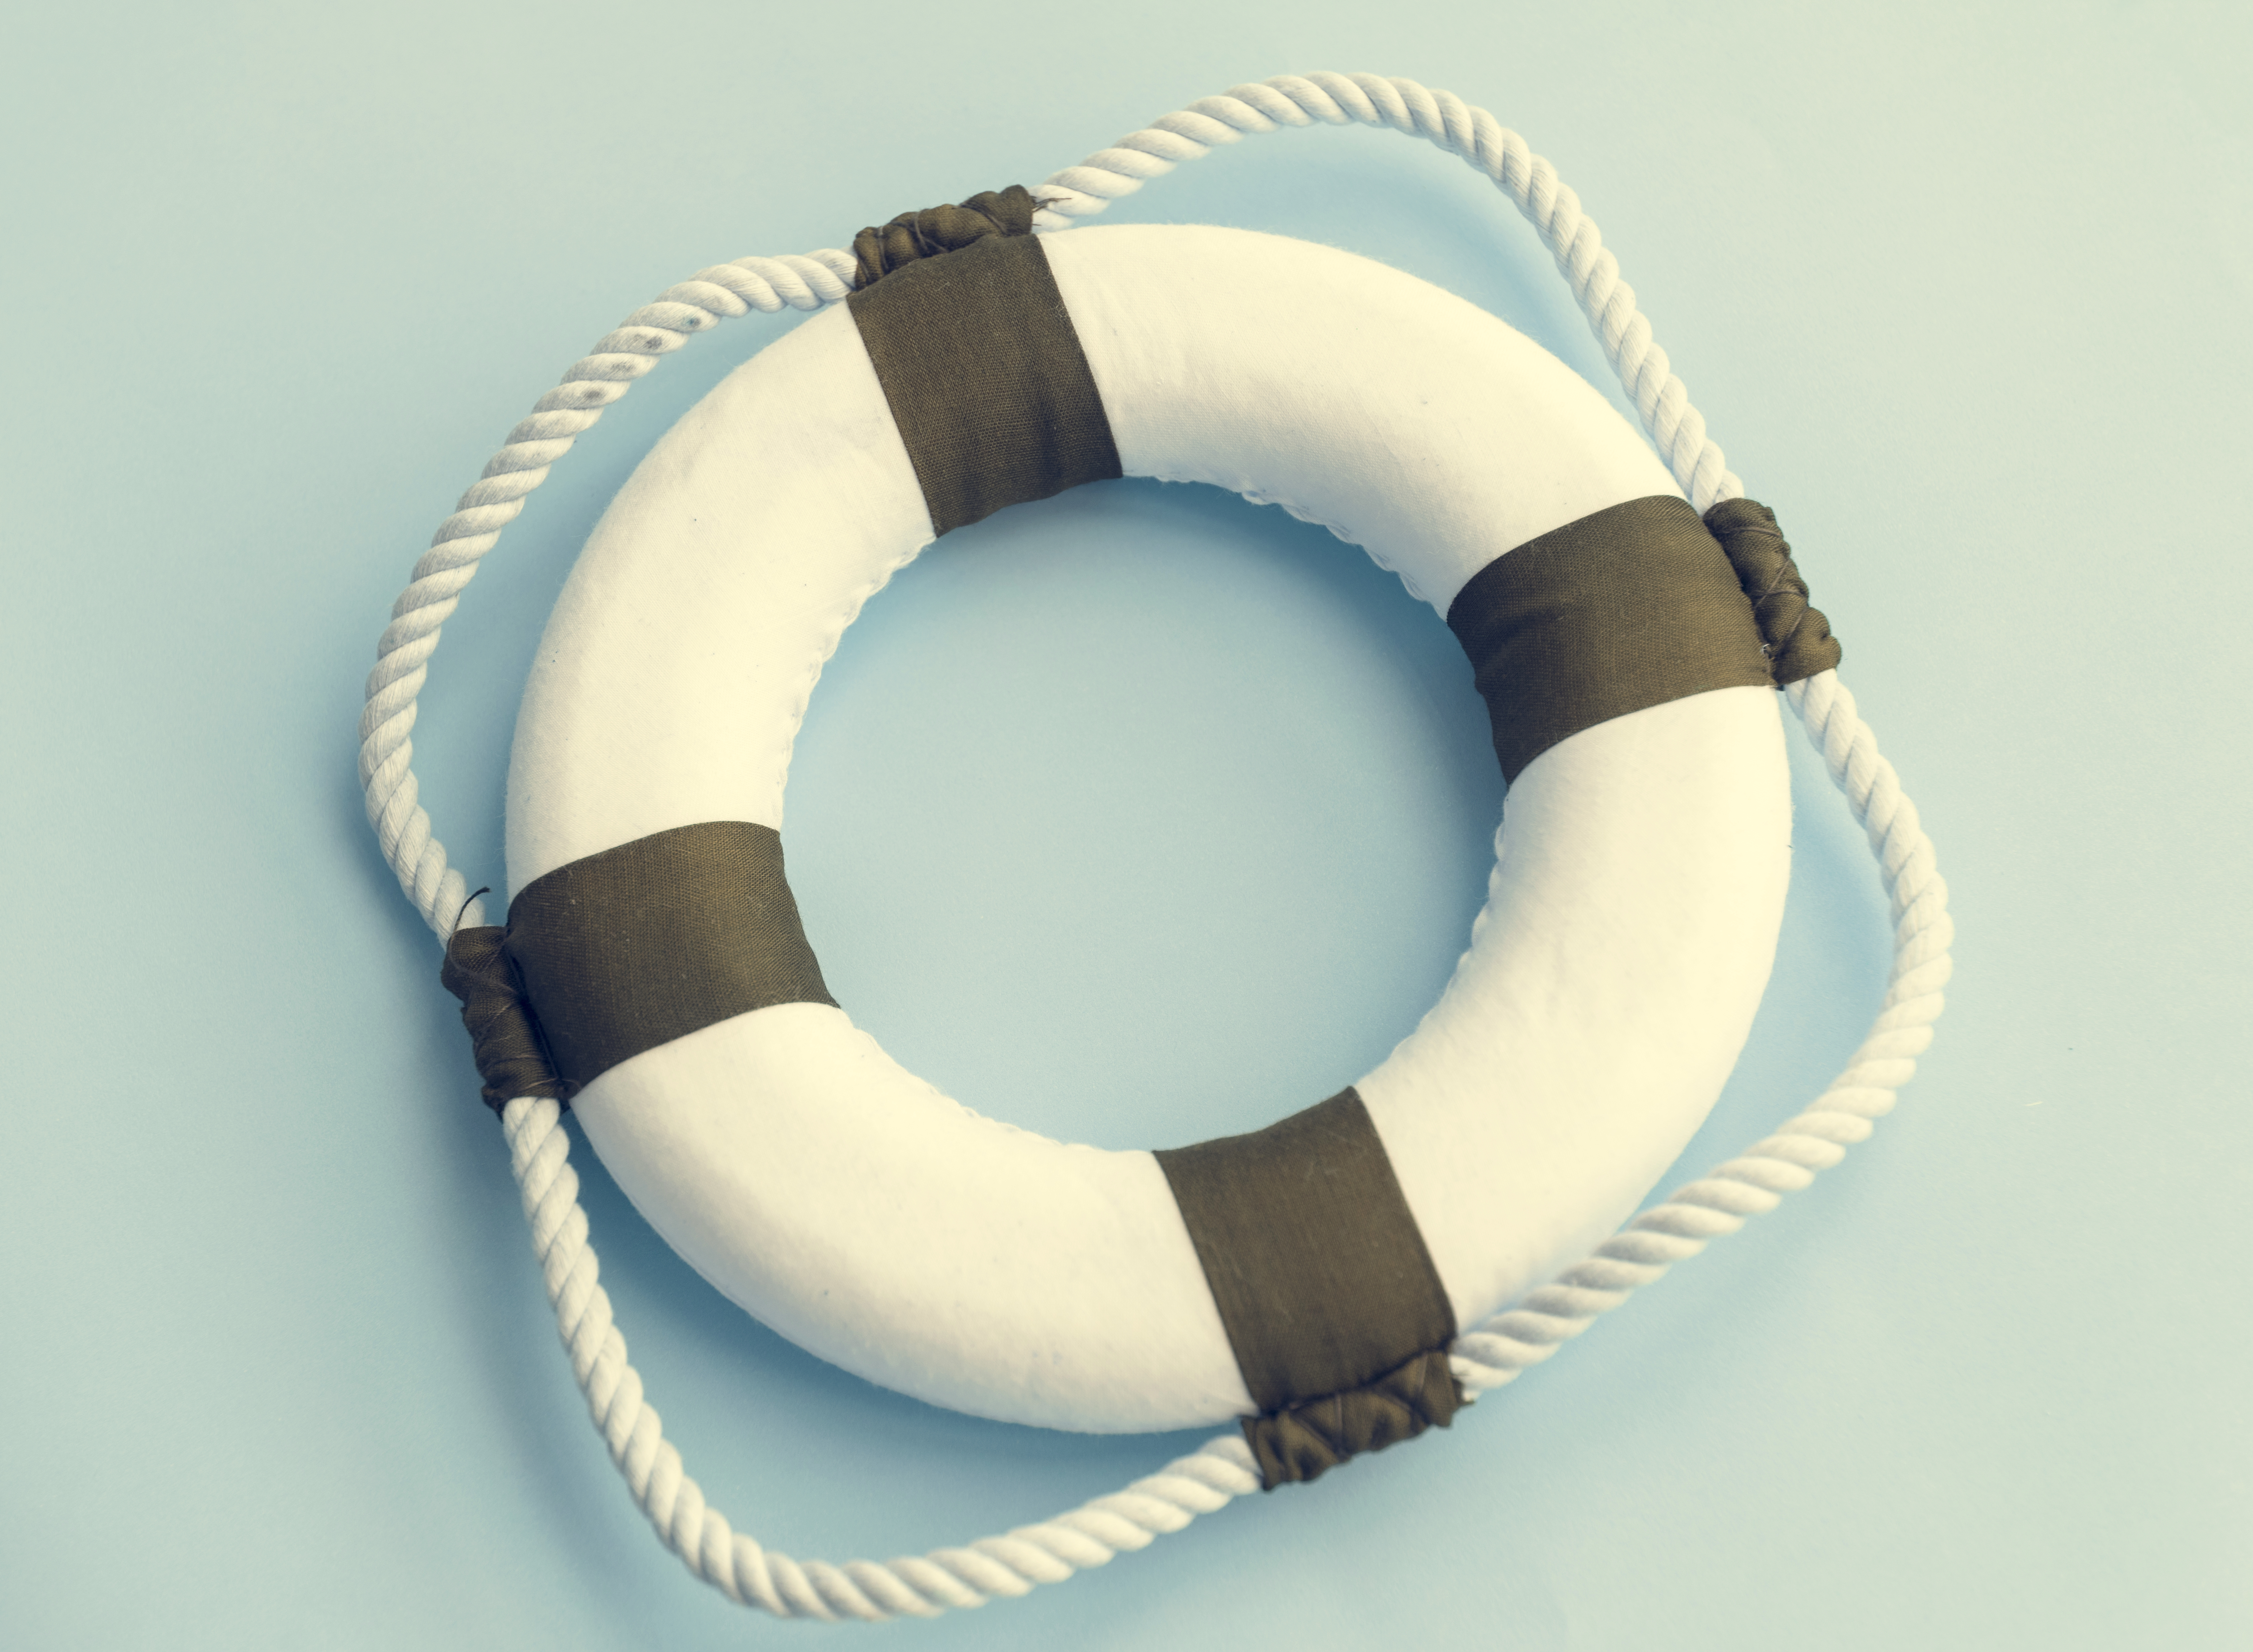 Lifebuoy Swimming Protection Emergency Safety Concept